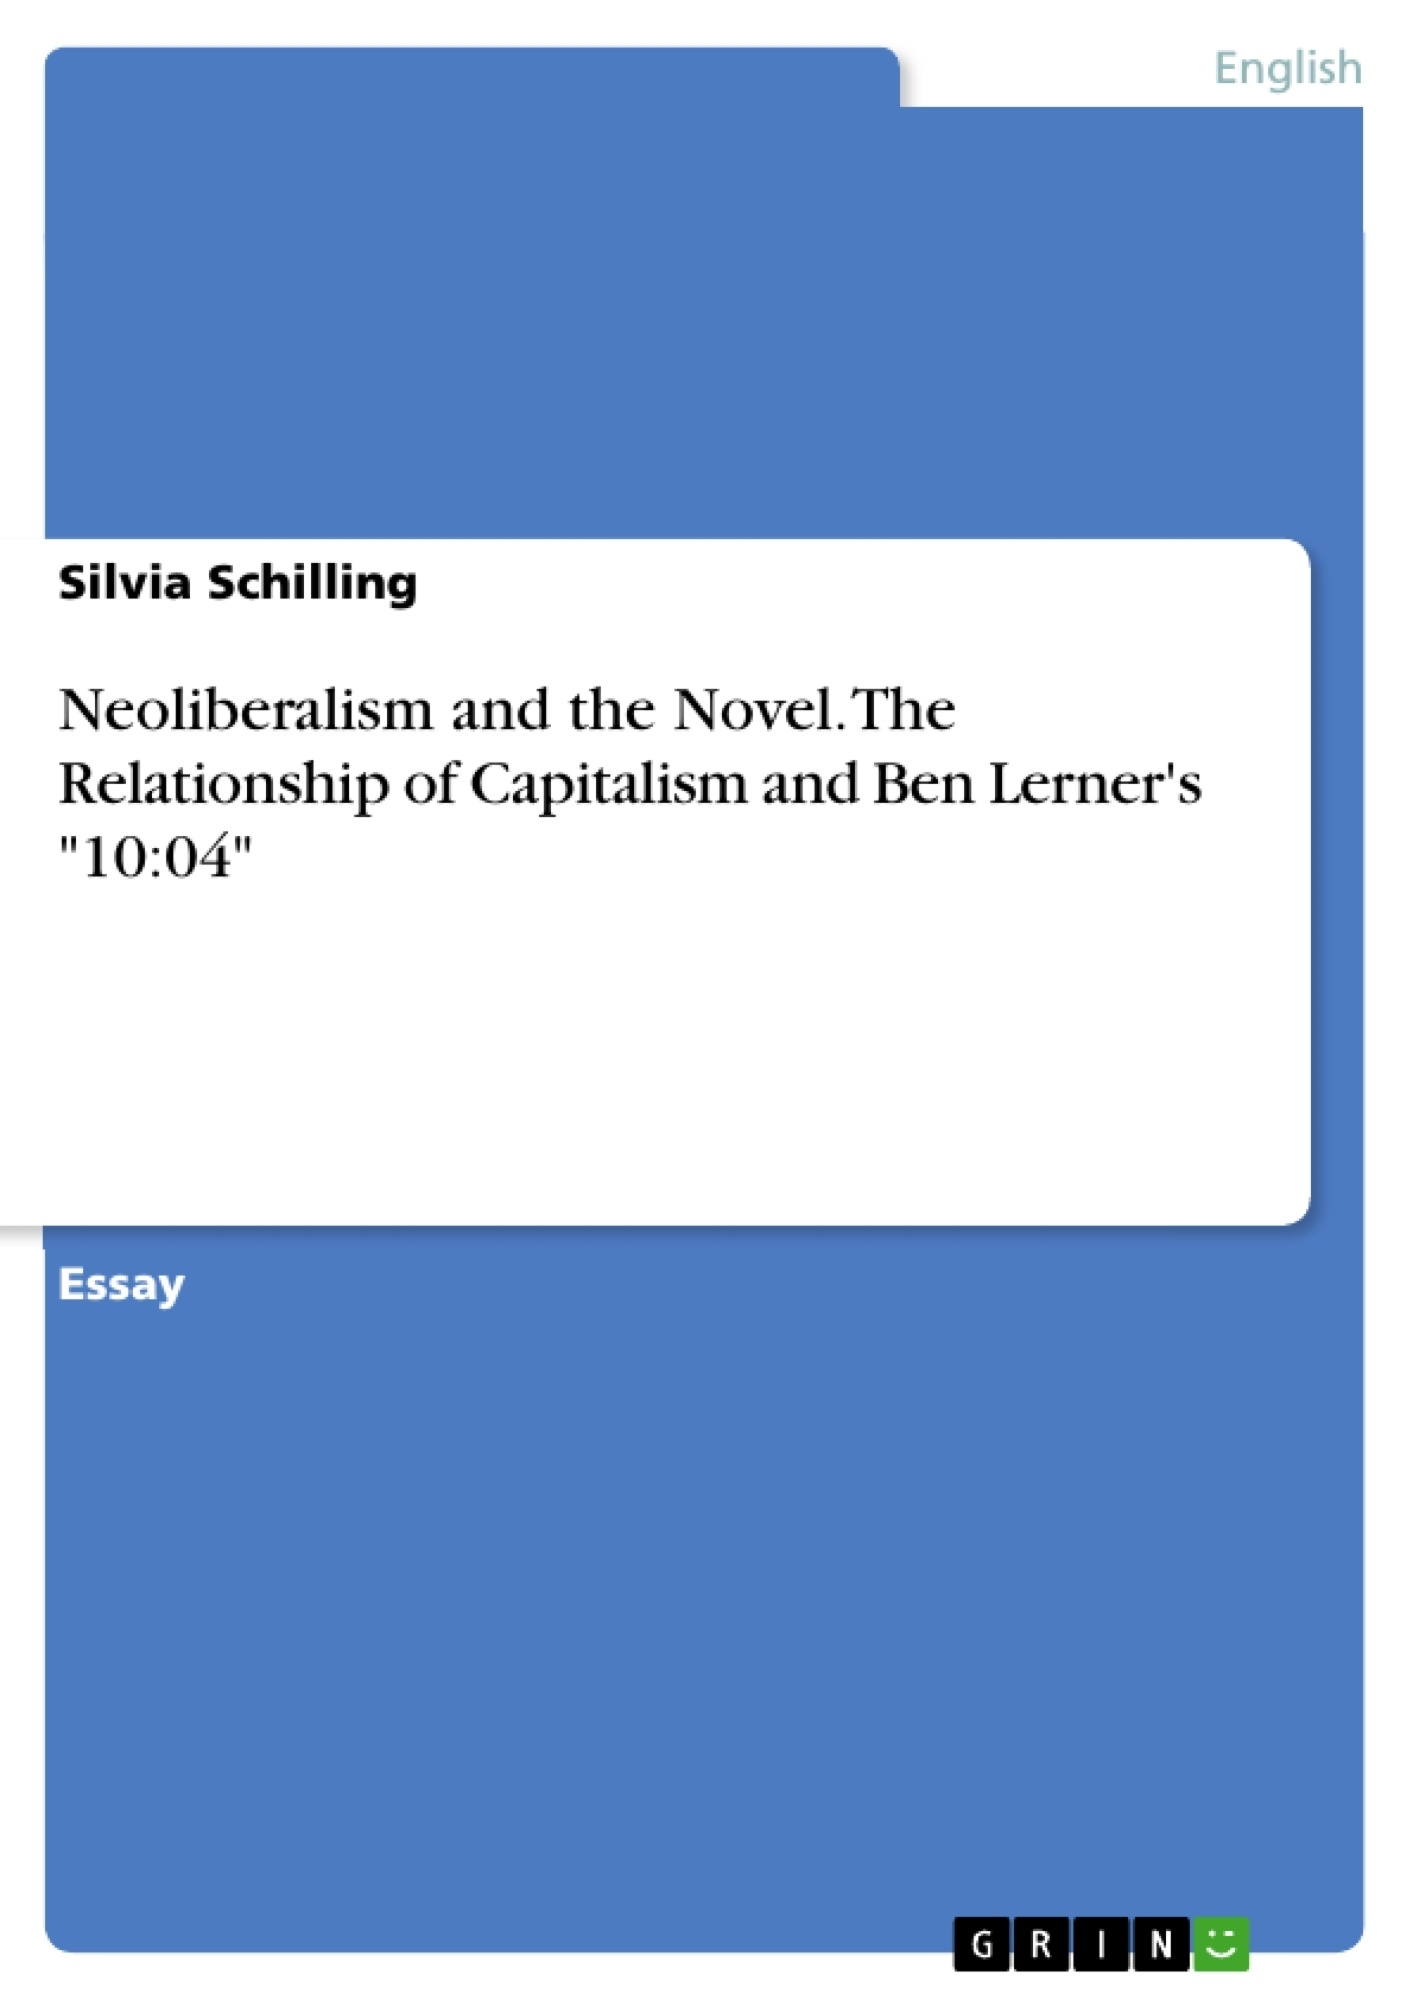 """Title: Neoliberalism and the Novel. The Relationship of Capitalism and Ben Lerner's """"10:04"""""""